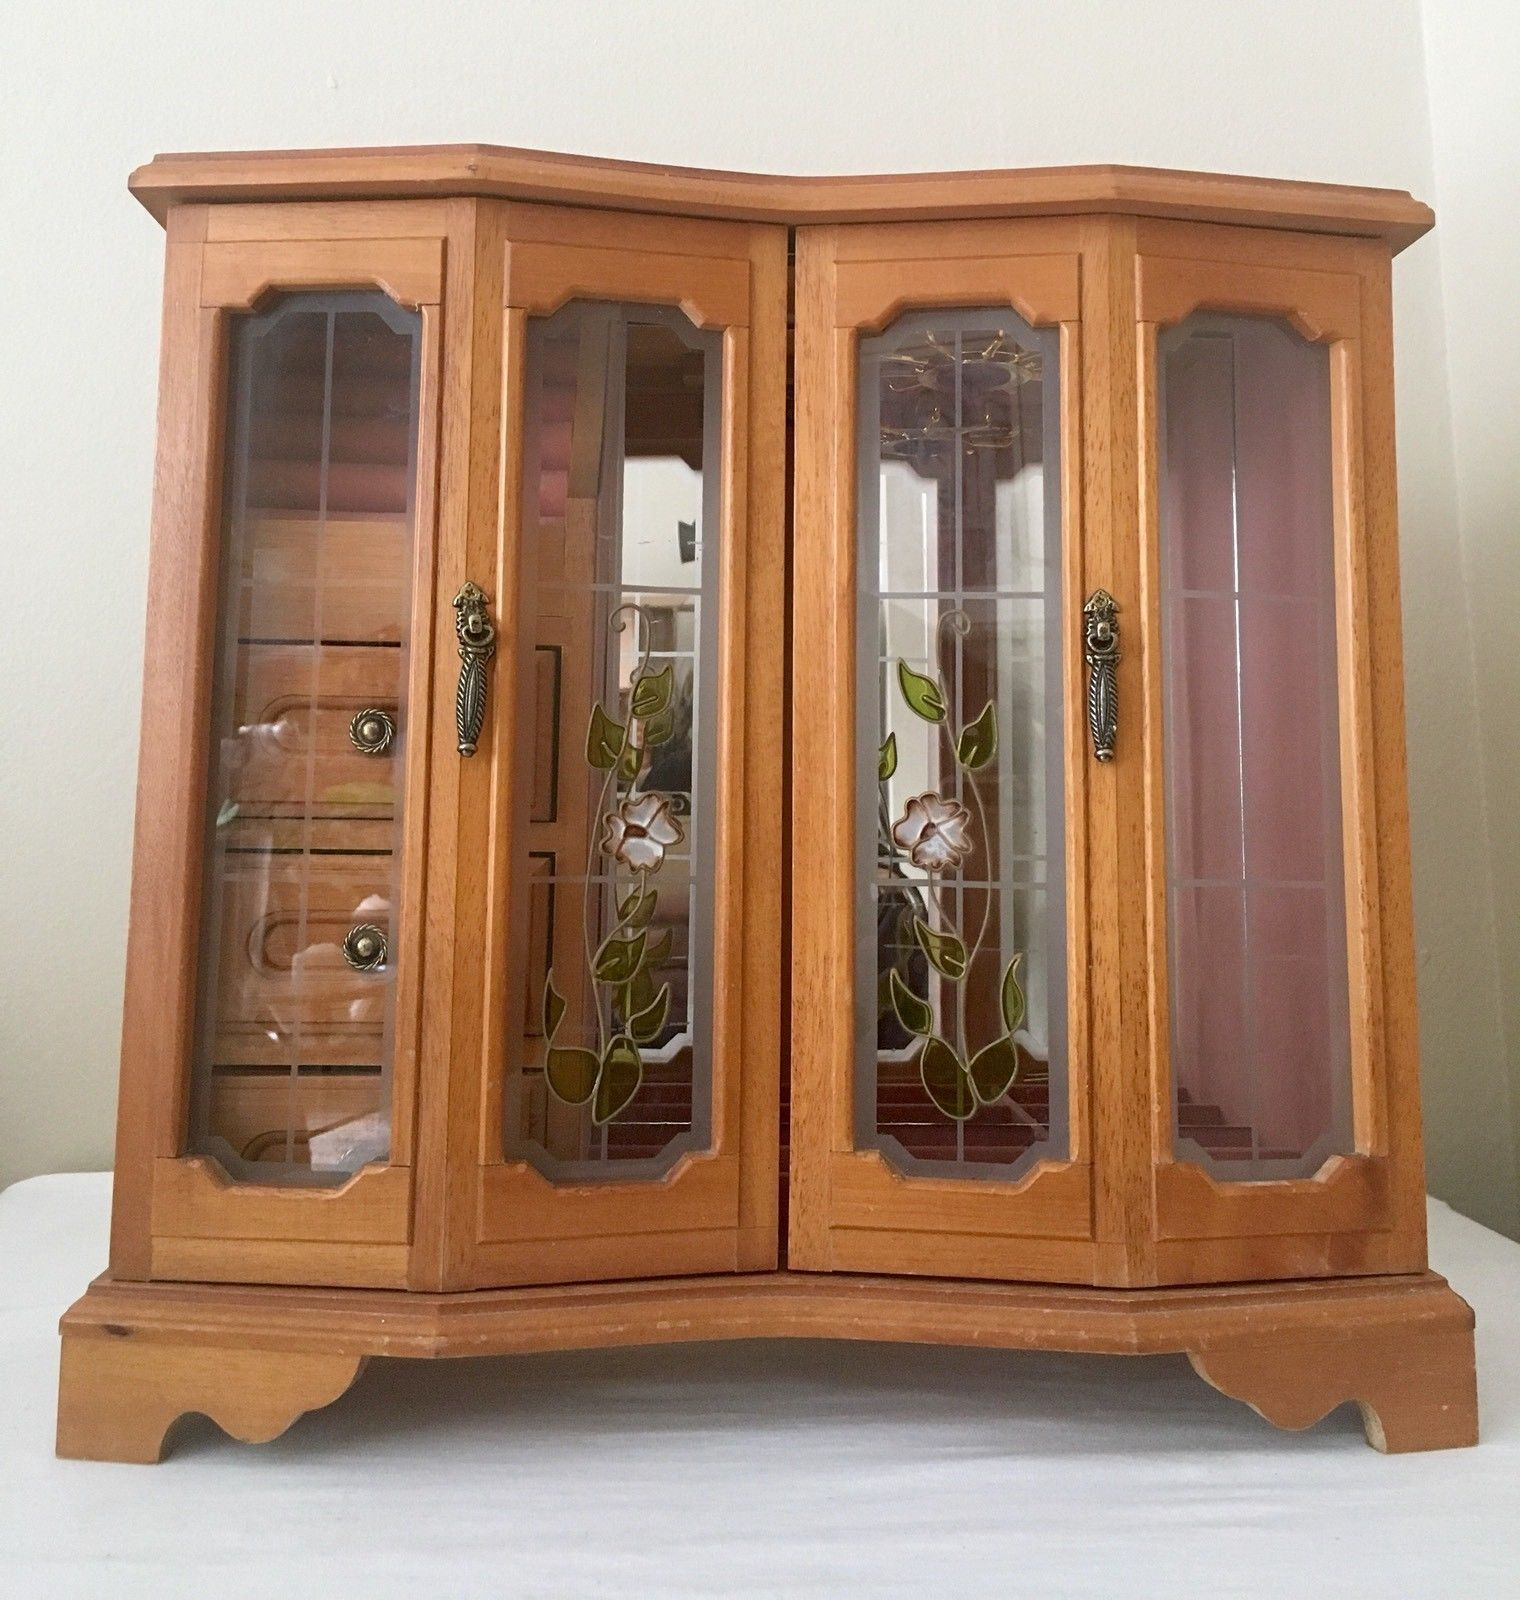 Mele Vintage Jewelry Box Oak Wood Etched Glass Mirrored Upright